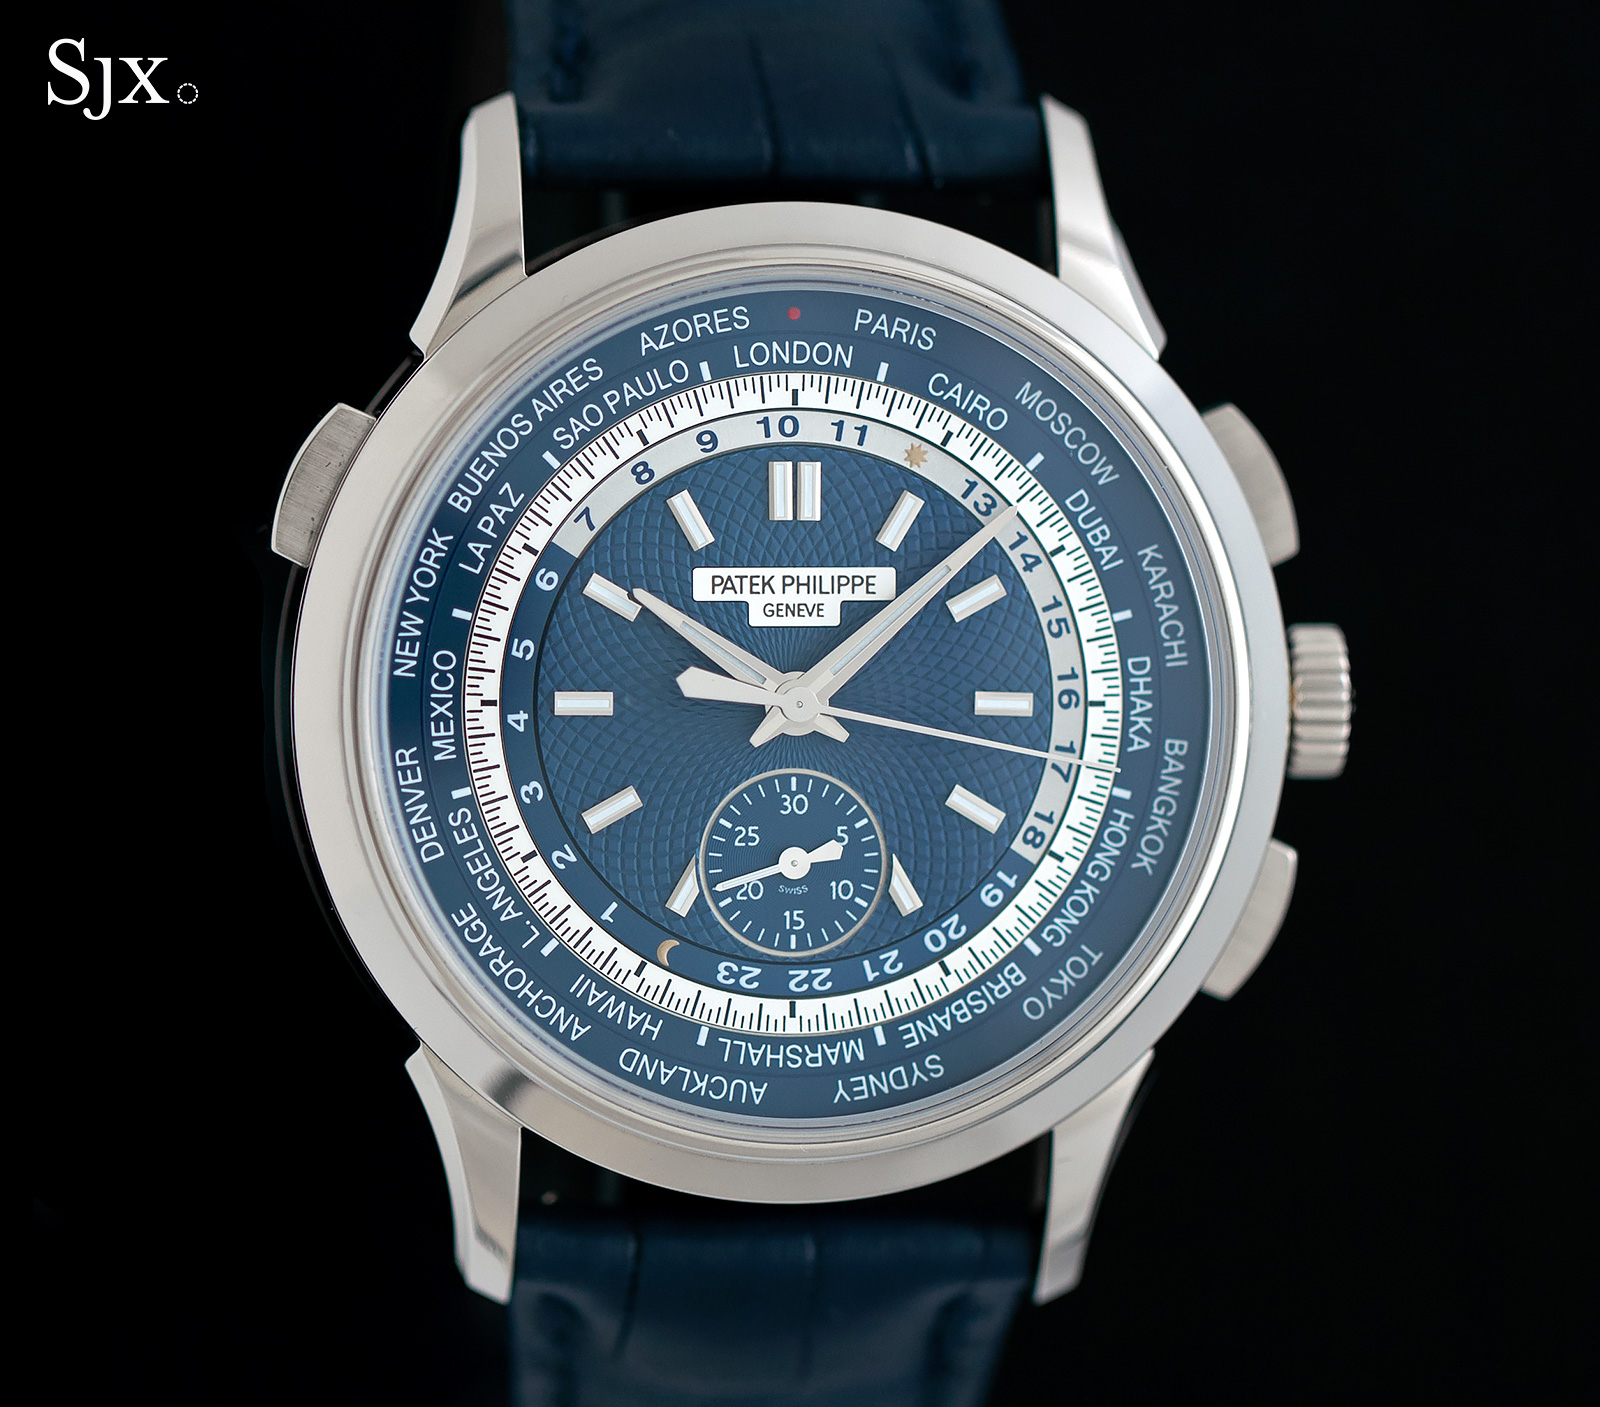 Patek Philippe World Time Chronograph Ref. 5930G 1